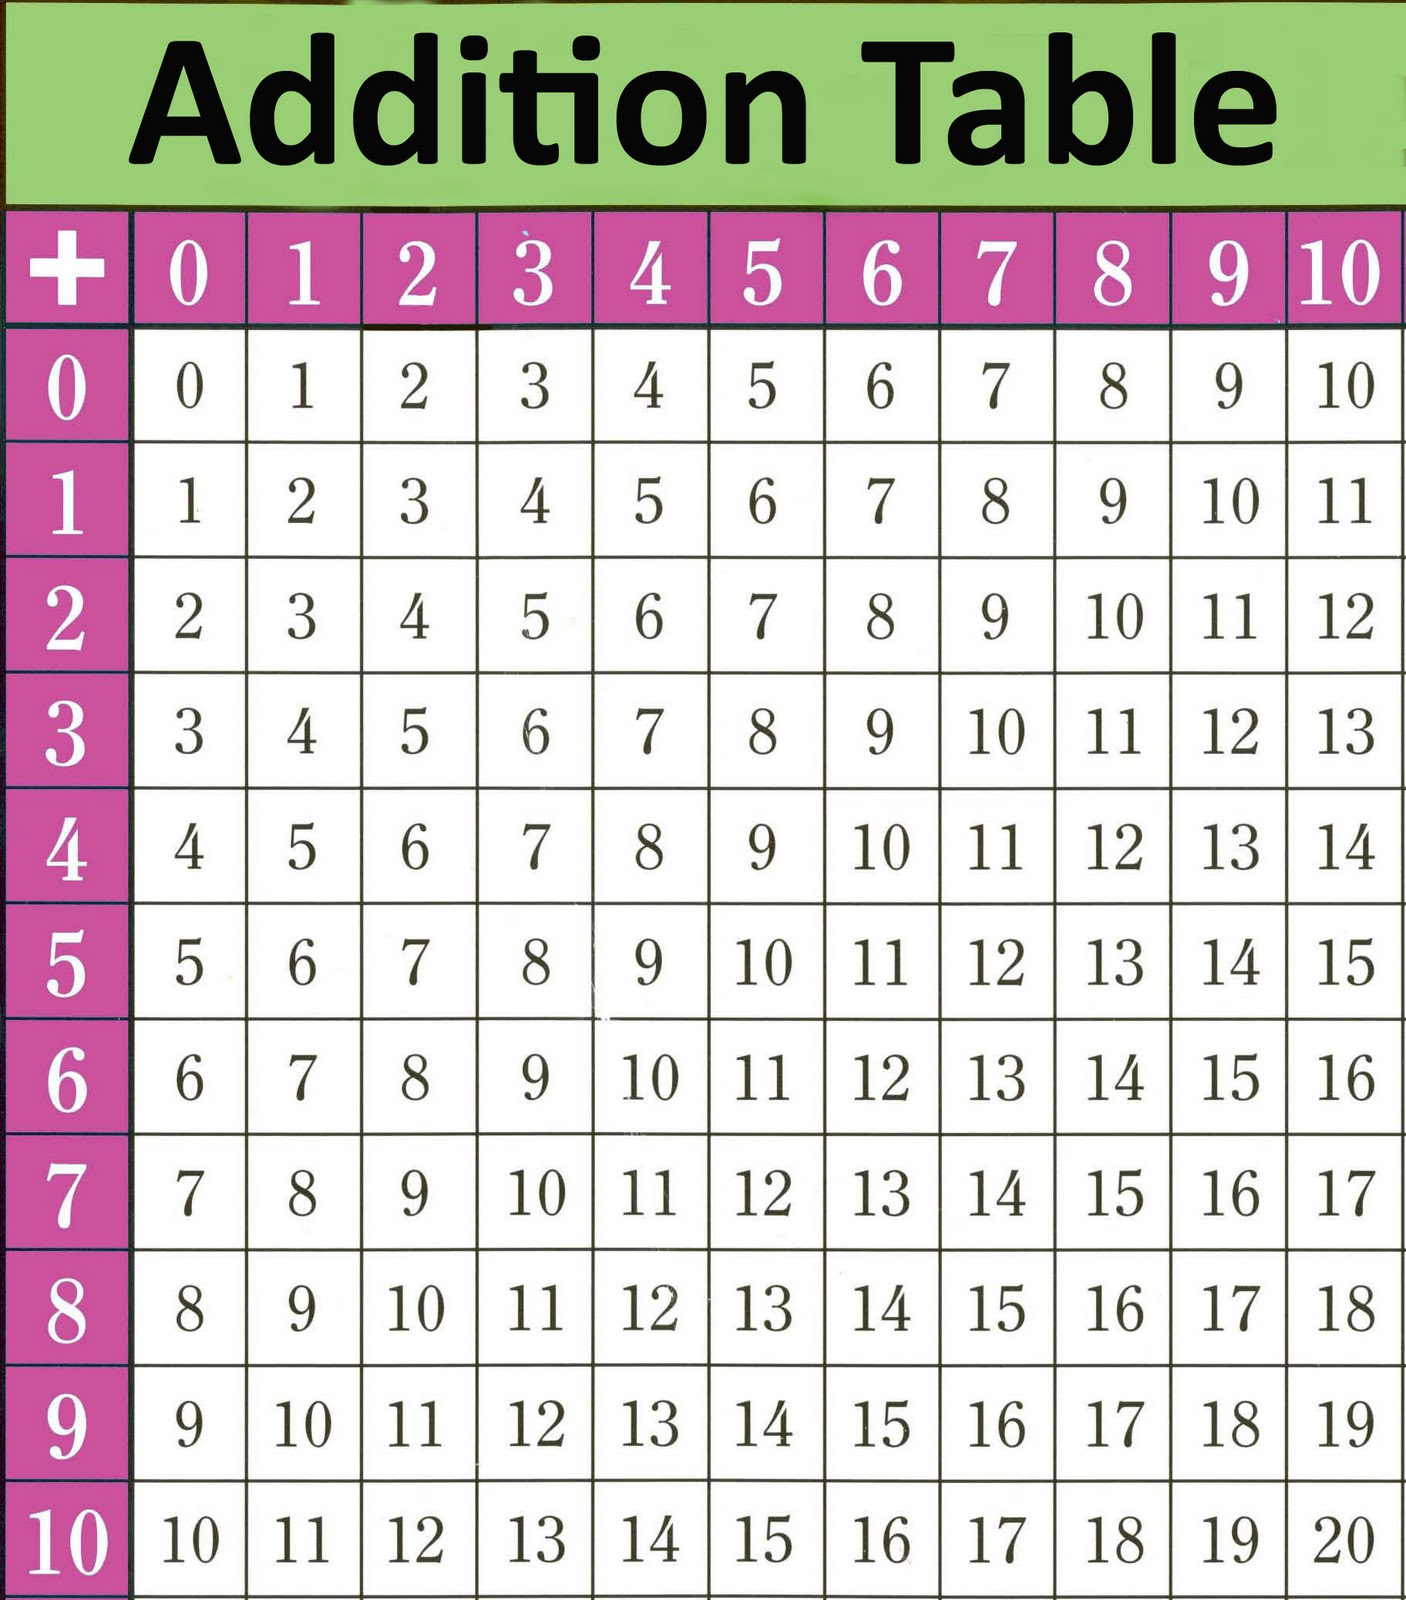 Crush image inside addition table printable